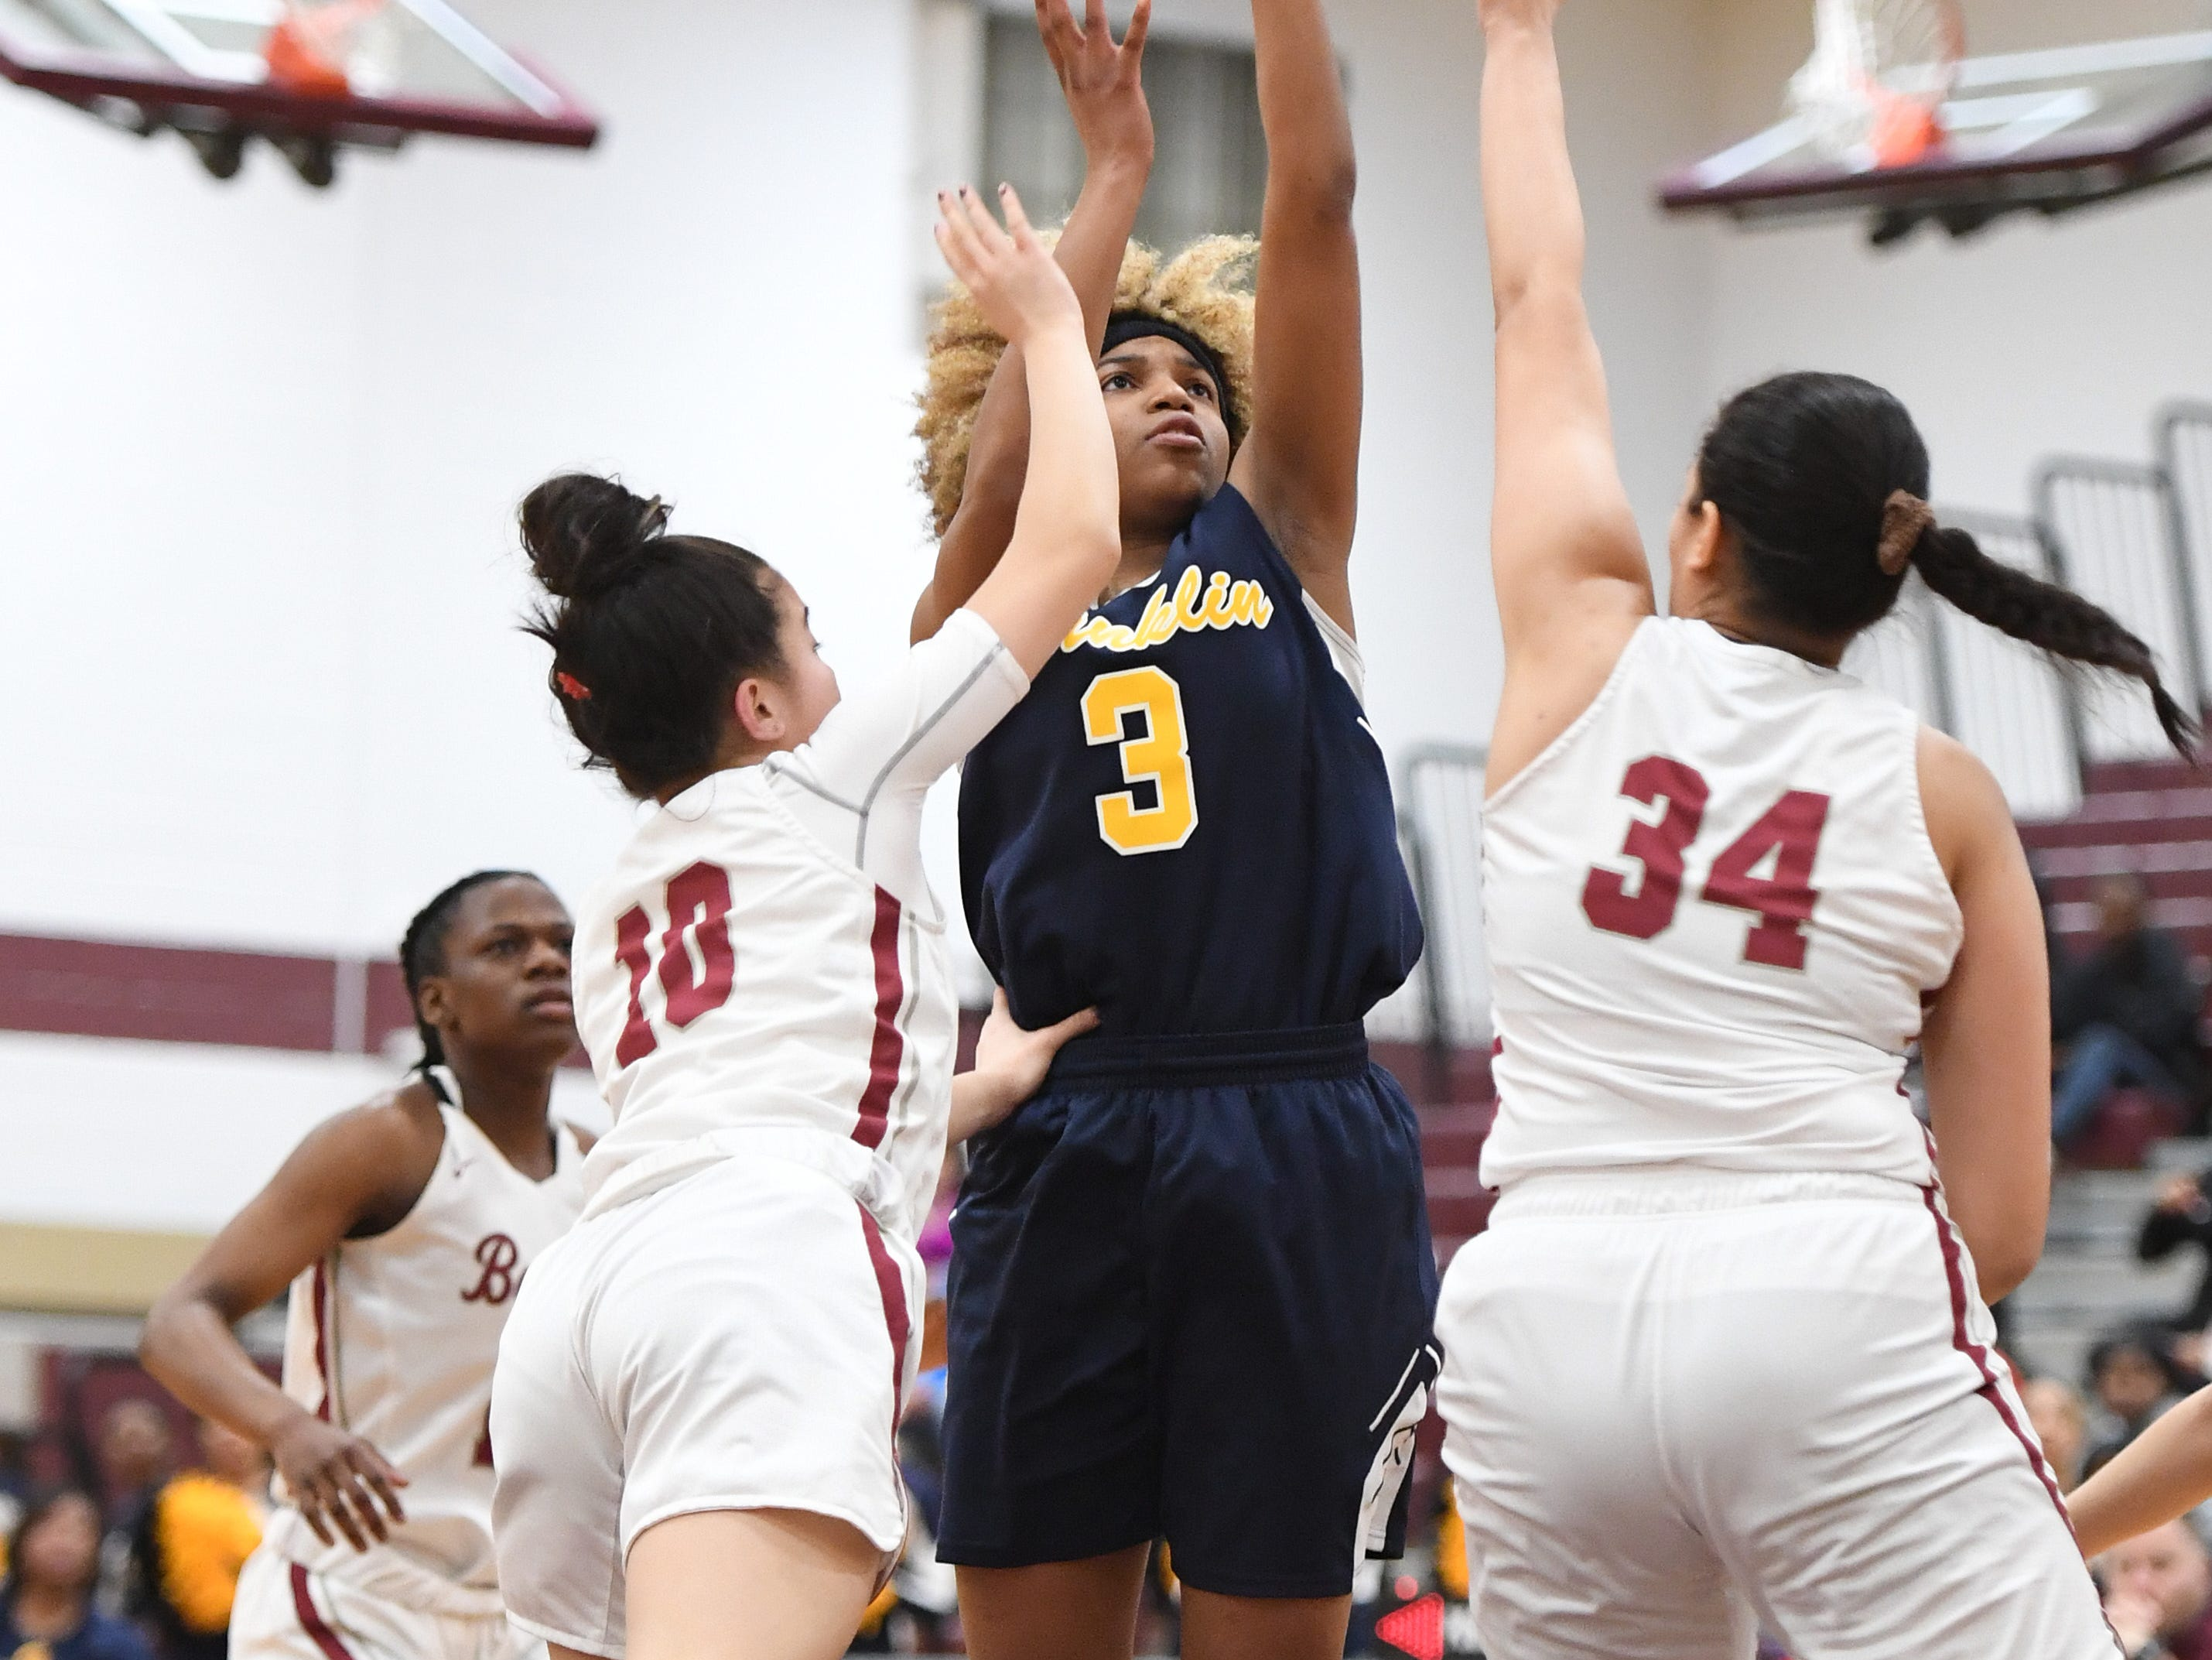 Franklin vs. Bloomfield in the girls basketball Group IV semifinal at Union High School on Thursday, March 7, 2019. F #3 Tiana Joy Jackson takes a shot.